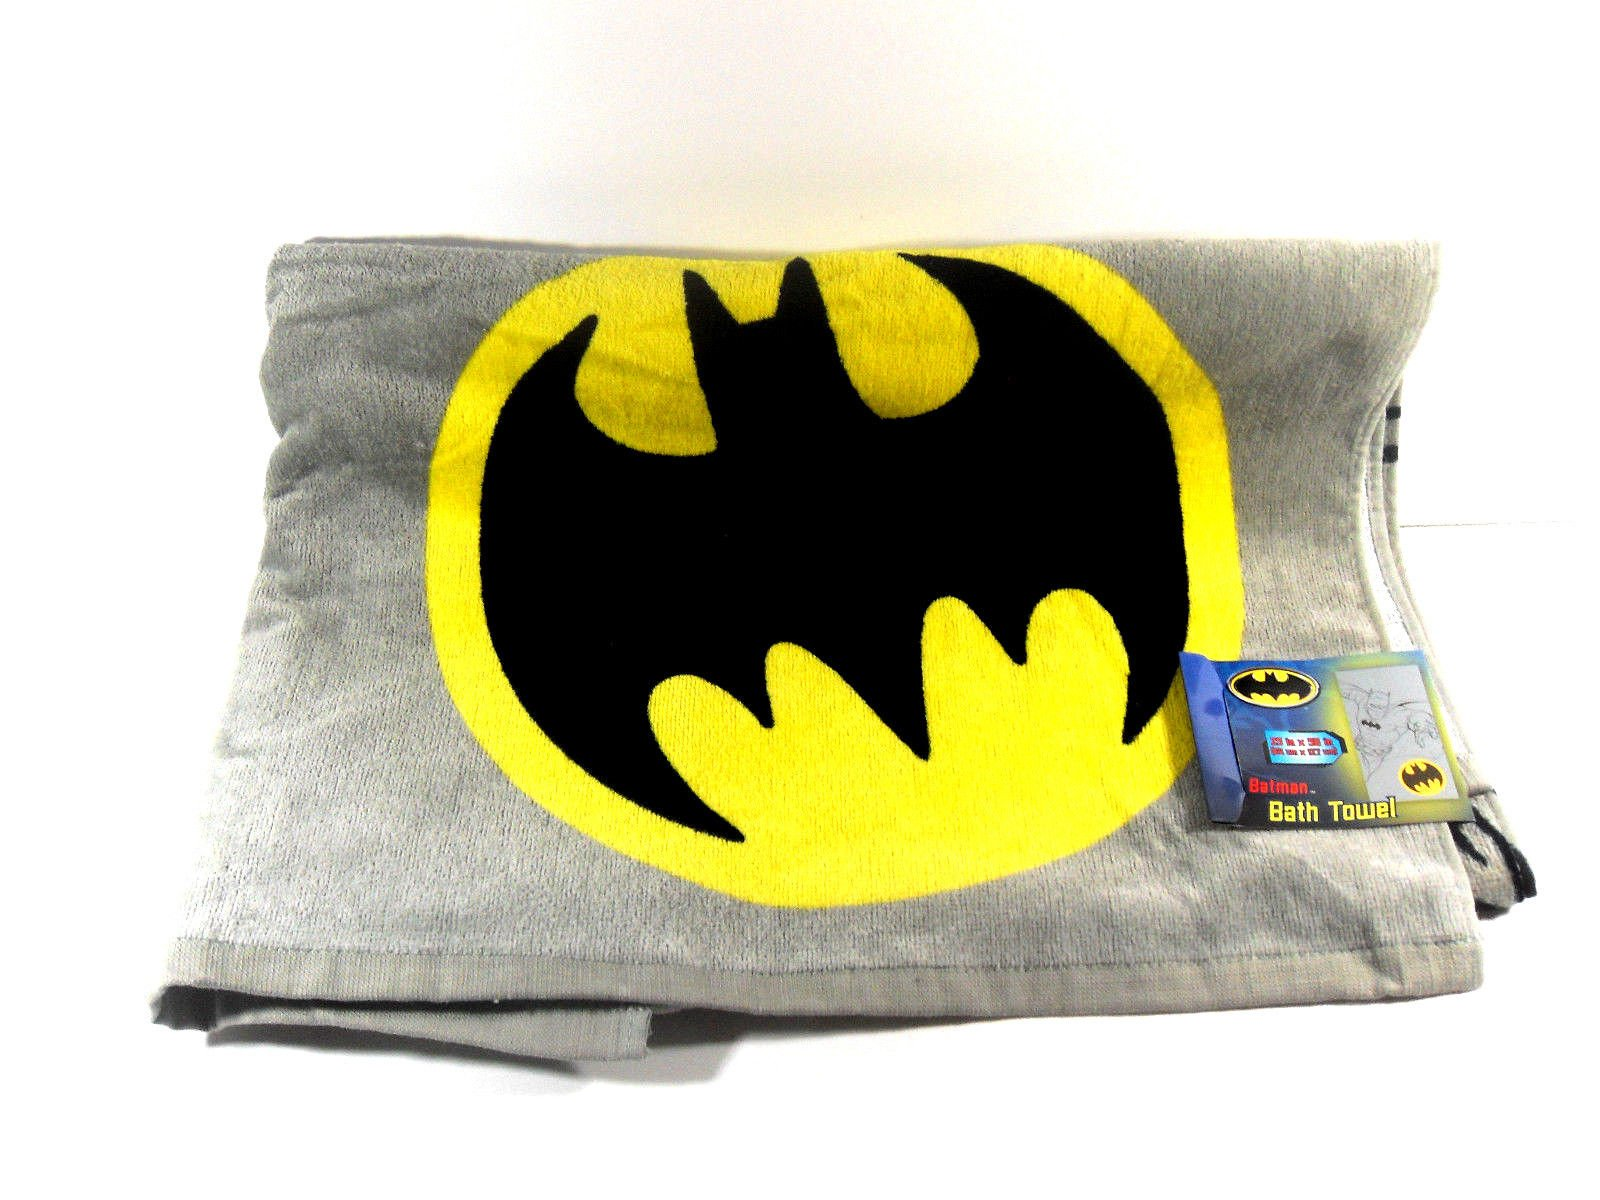 Batman Bathroom Set, Shower Curtain, Hooks, Bath Rug, Bath Towel, Pump Lotion, Toothbrush Holder by Batman (Image #5)